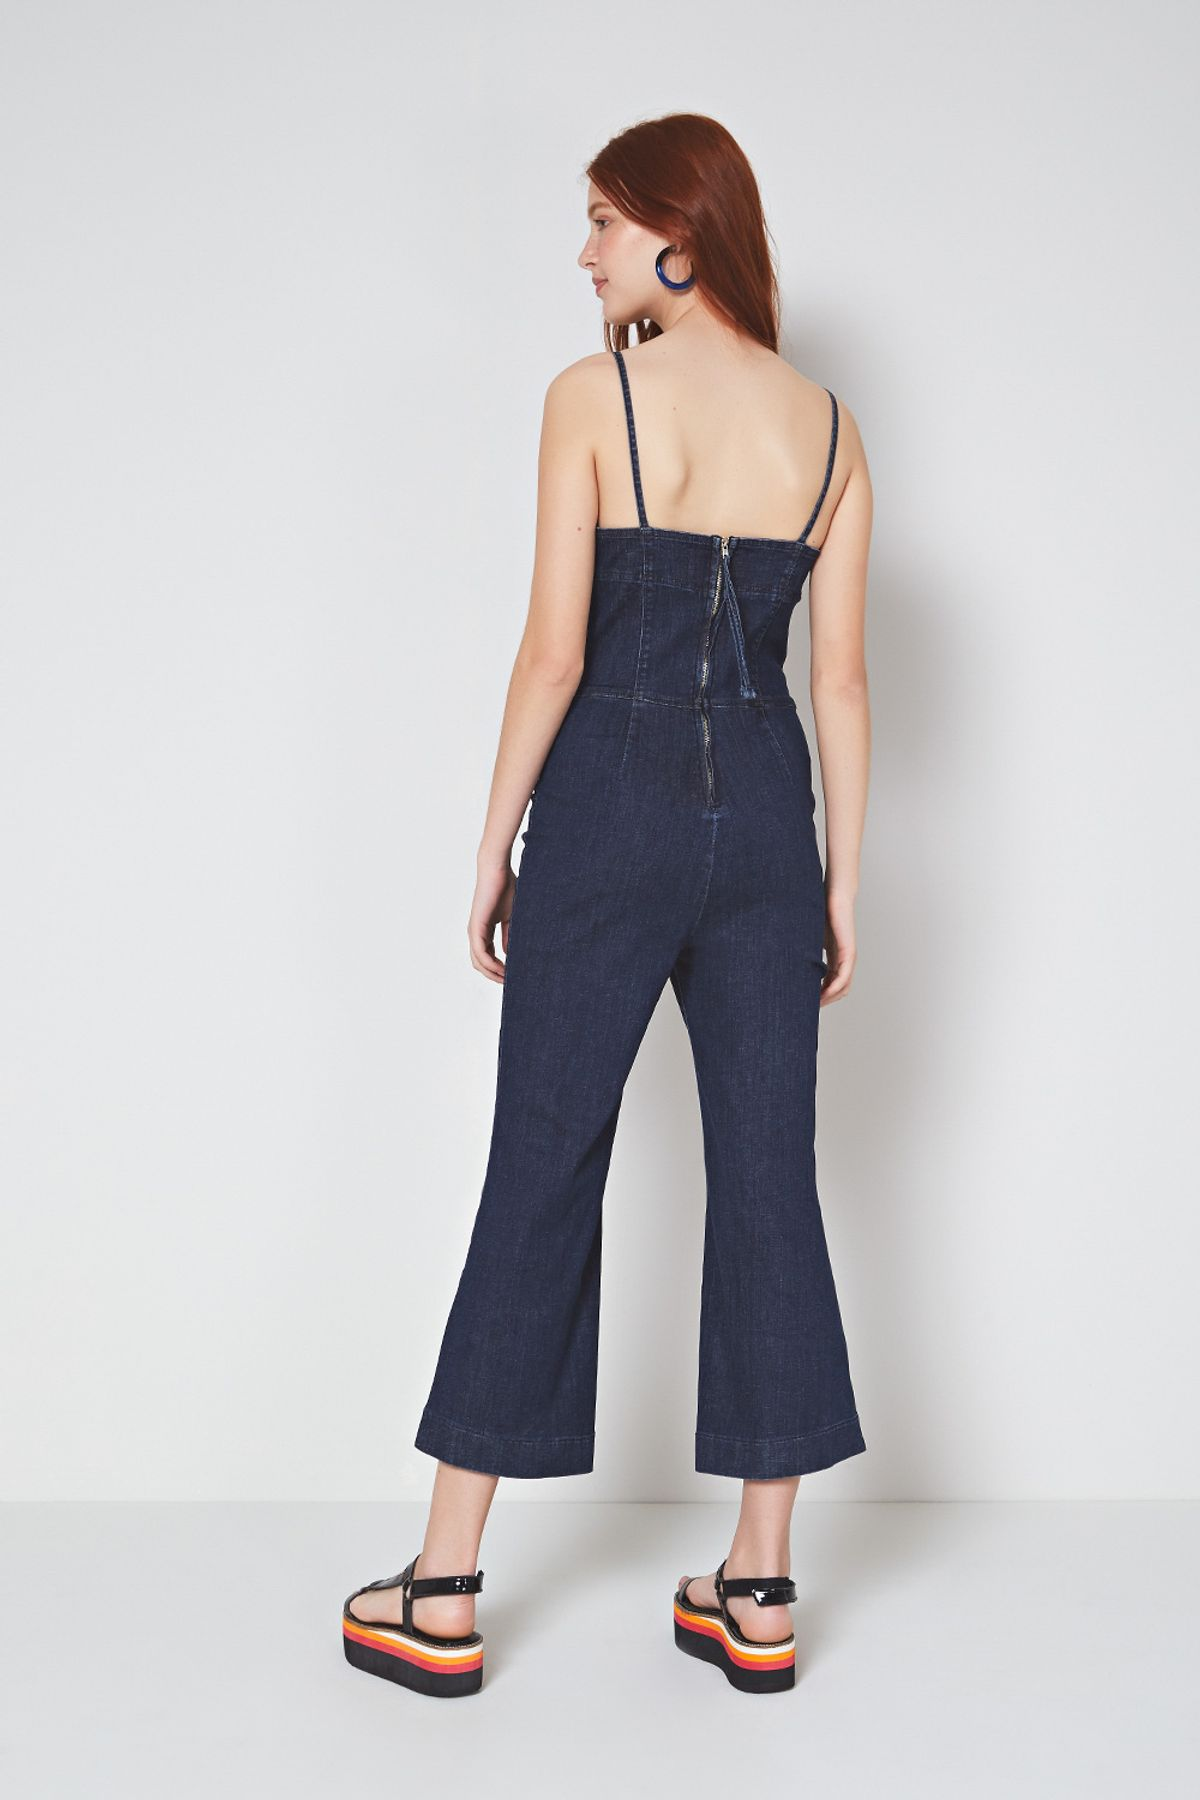 MACACAO-JEANS-ALCA-CROPPED-020214590057-OH-BOY